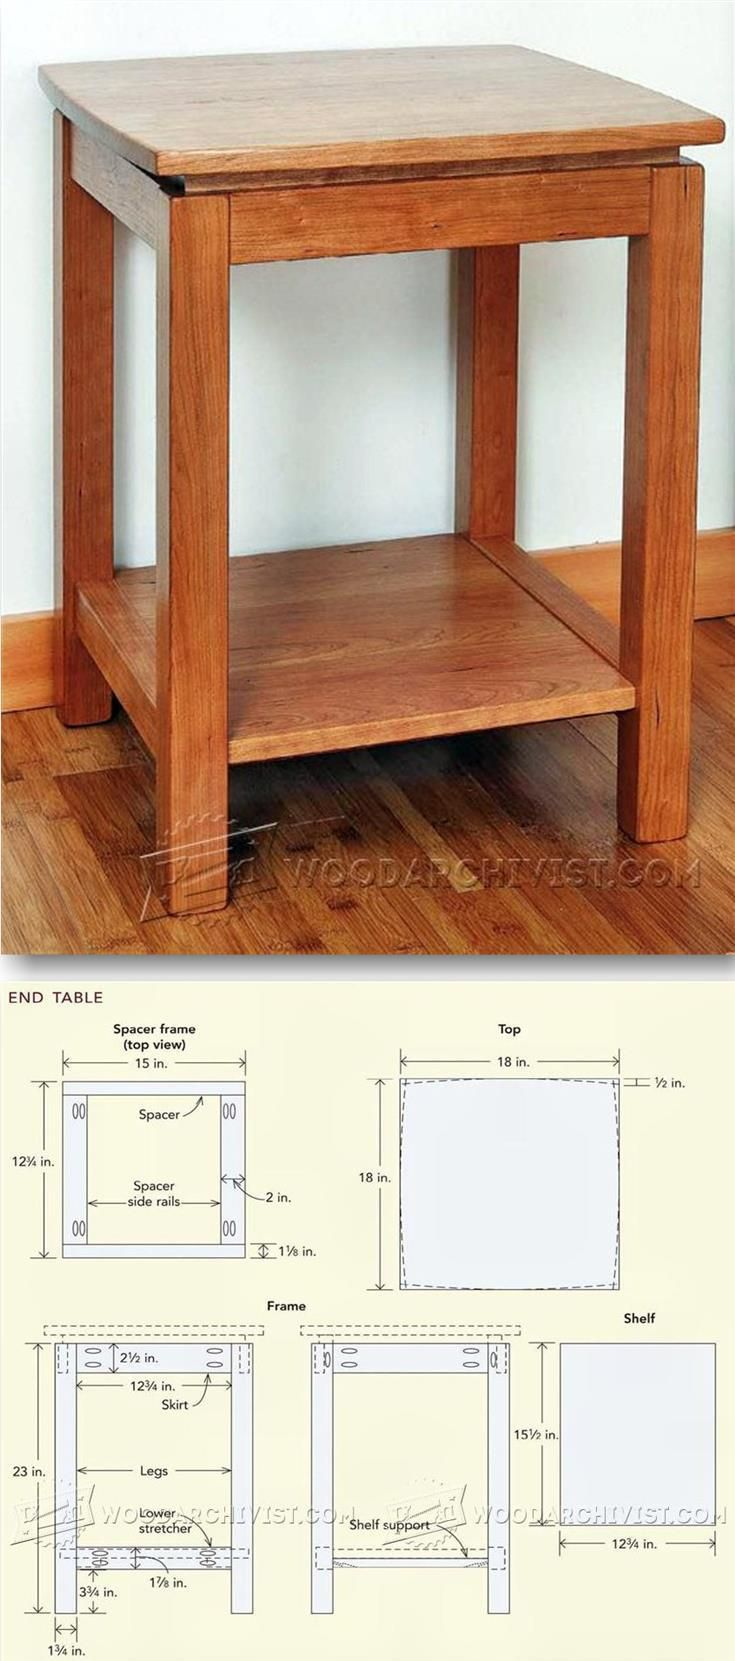 Build End Table   Furniture Plans and Projects   Woodwork  Woodworking  Woodworking  Plans  Woodworking Projects. Best 25  End table plans ideas on Pinterest   End tables  Wood end